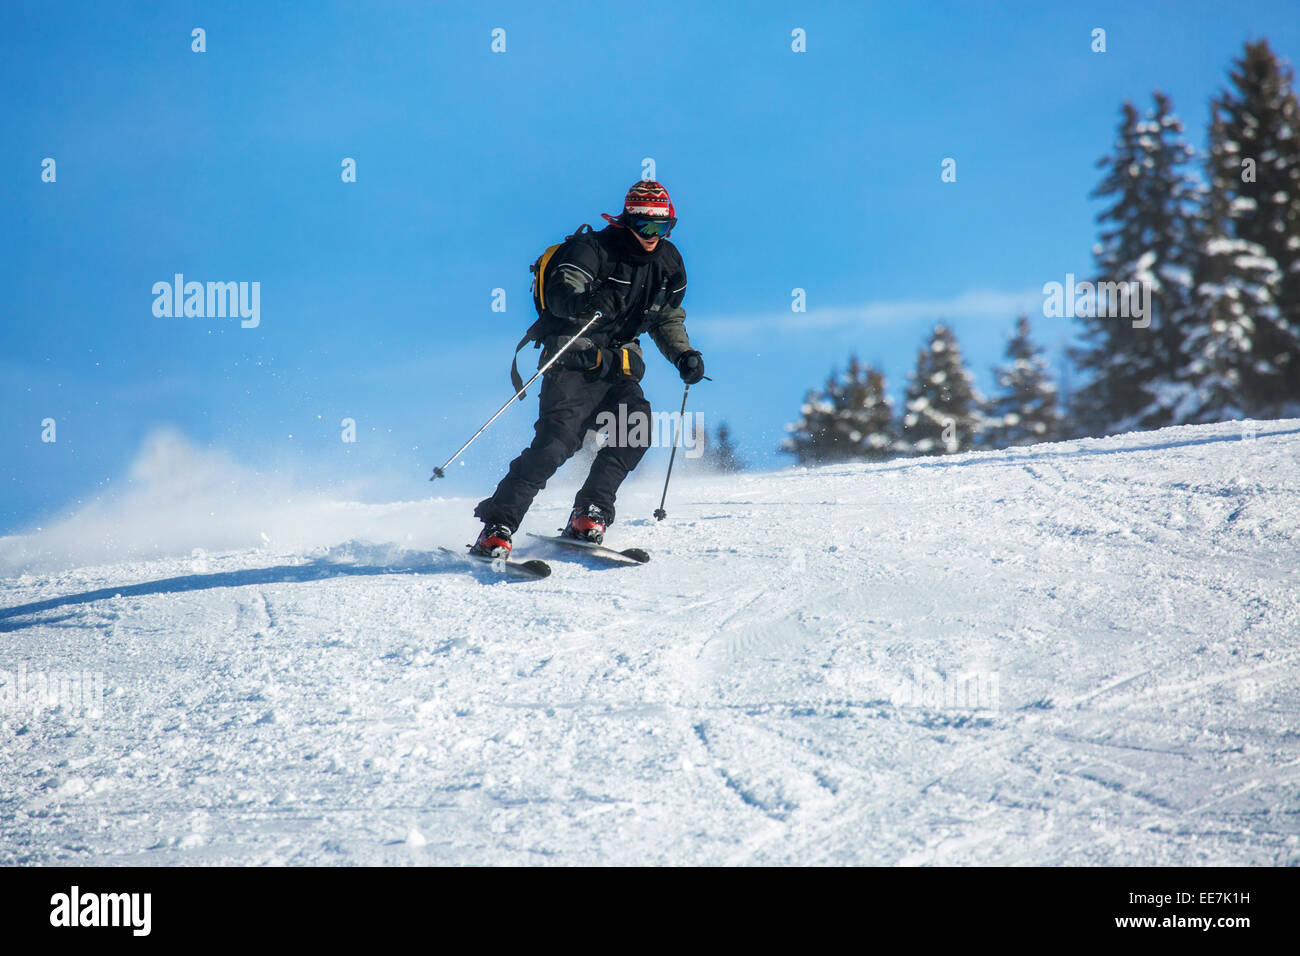 Skier with backpack skiing down ski slope in winter sports resort in the Alps - Stock Image